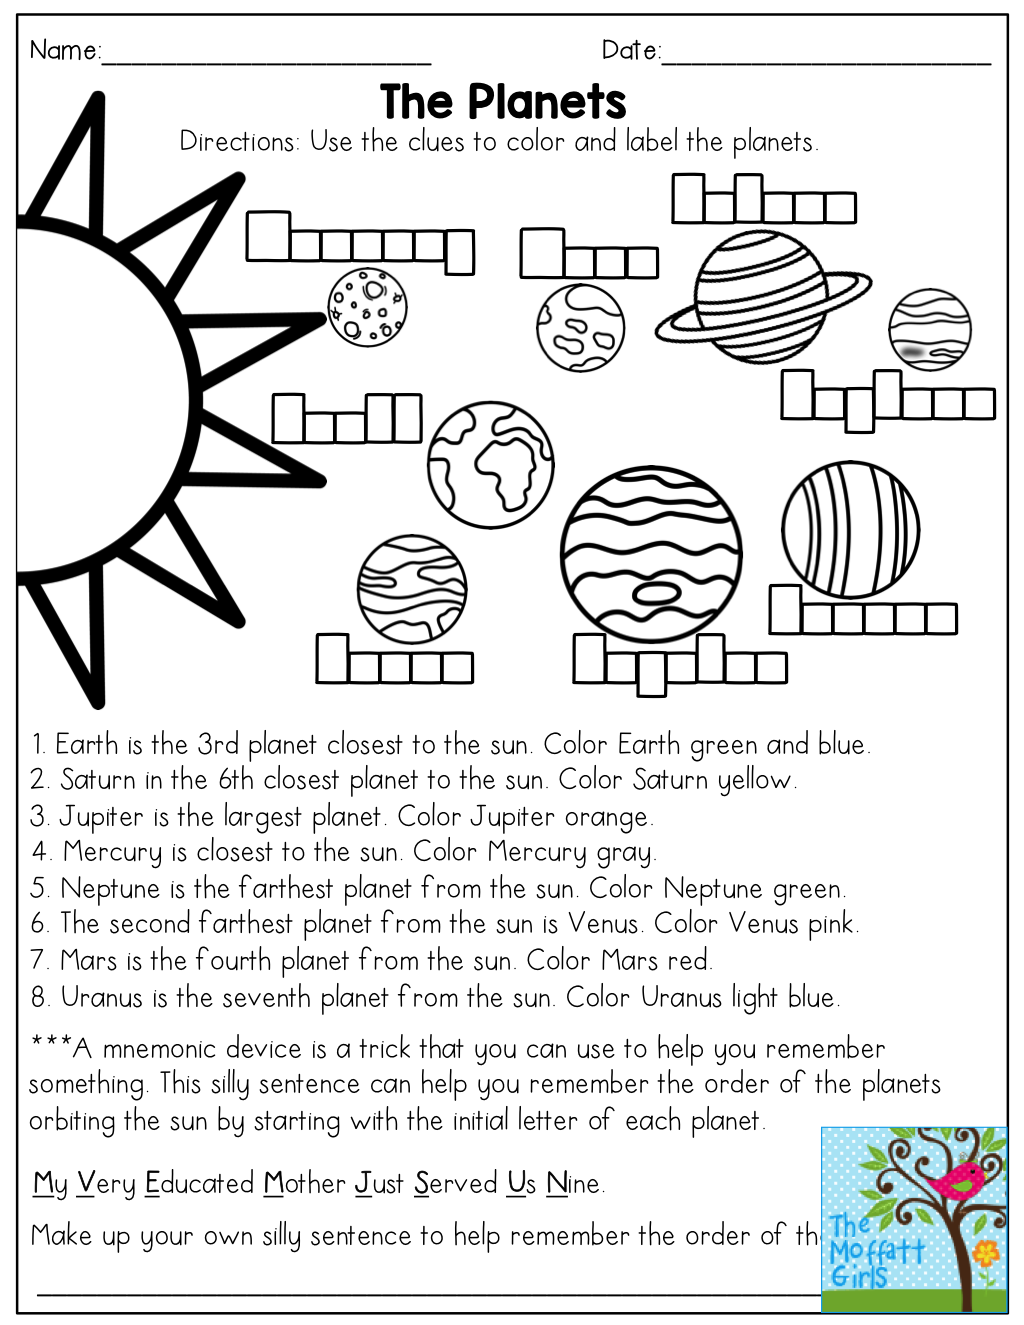 The Planets Read And Color Then Come Up With A Mnemonic Device To Remember The Order Learning Made Fun Homeschool Science Space Lessons Science Worksheets [ 1325 x 1024 Pixel ]